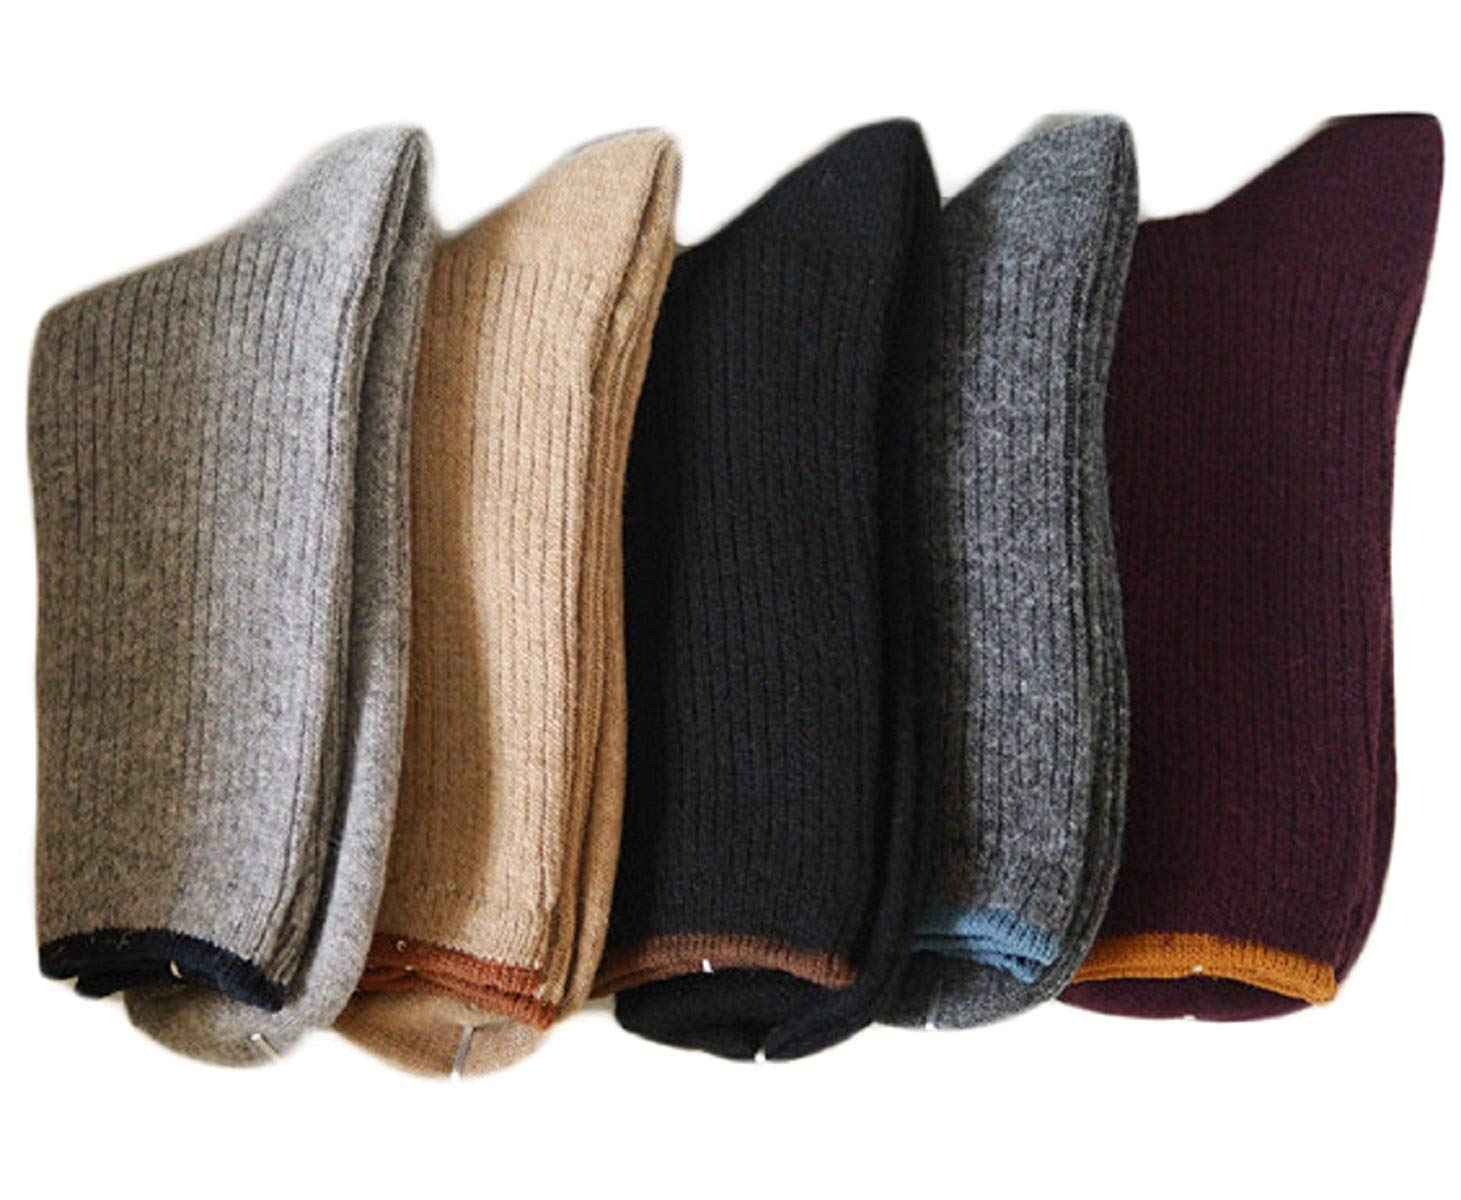 18 pieces Women s 2 Pairs Wool Socks Solid Button Animal Pleated Harem Pants Low